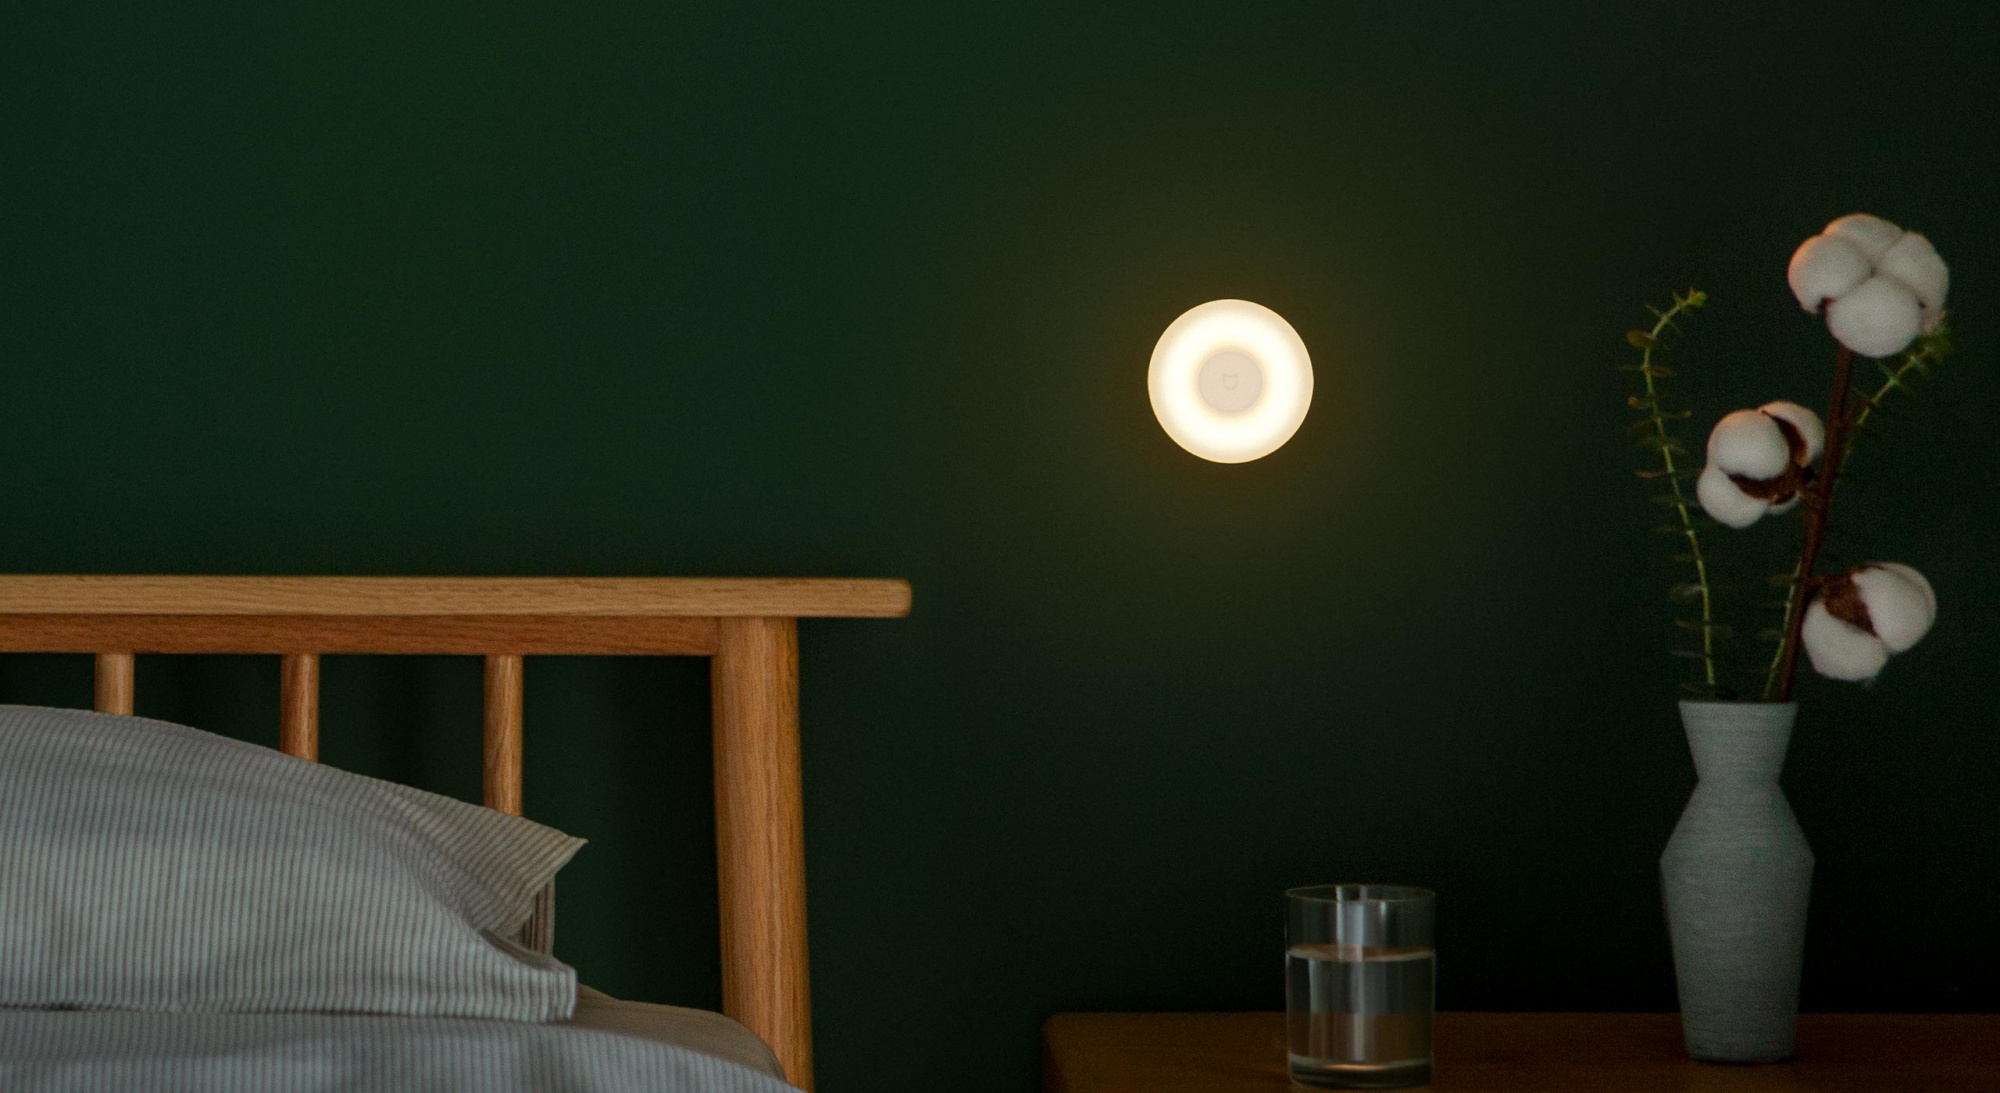 nightlight2-09.jpg